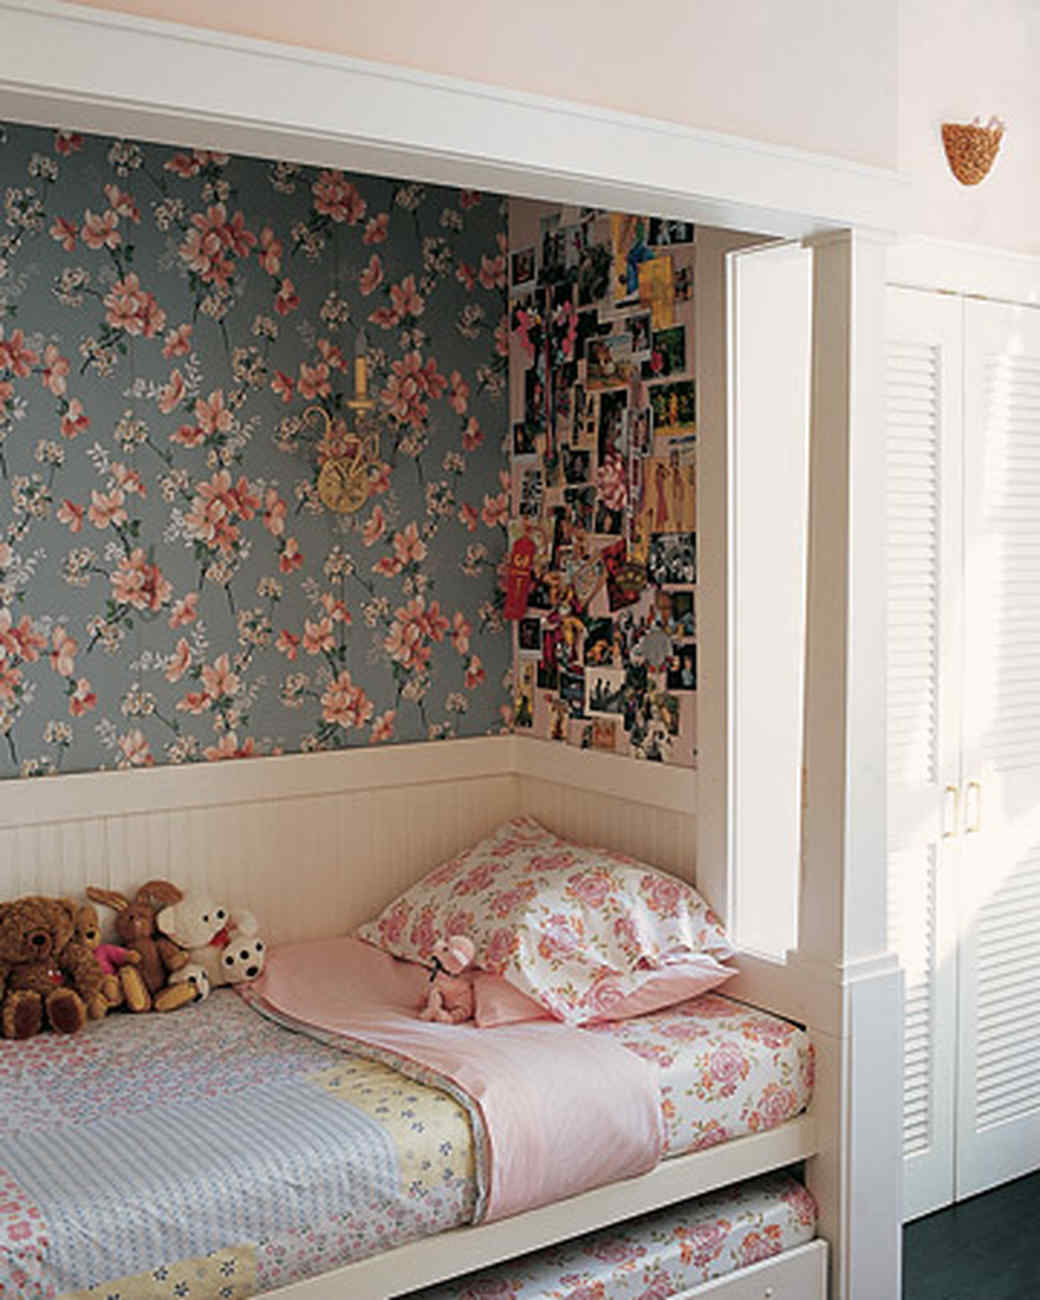 Built In Bed Nook Home Tours Of Cool Spaces For Kids Martha Stewart